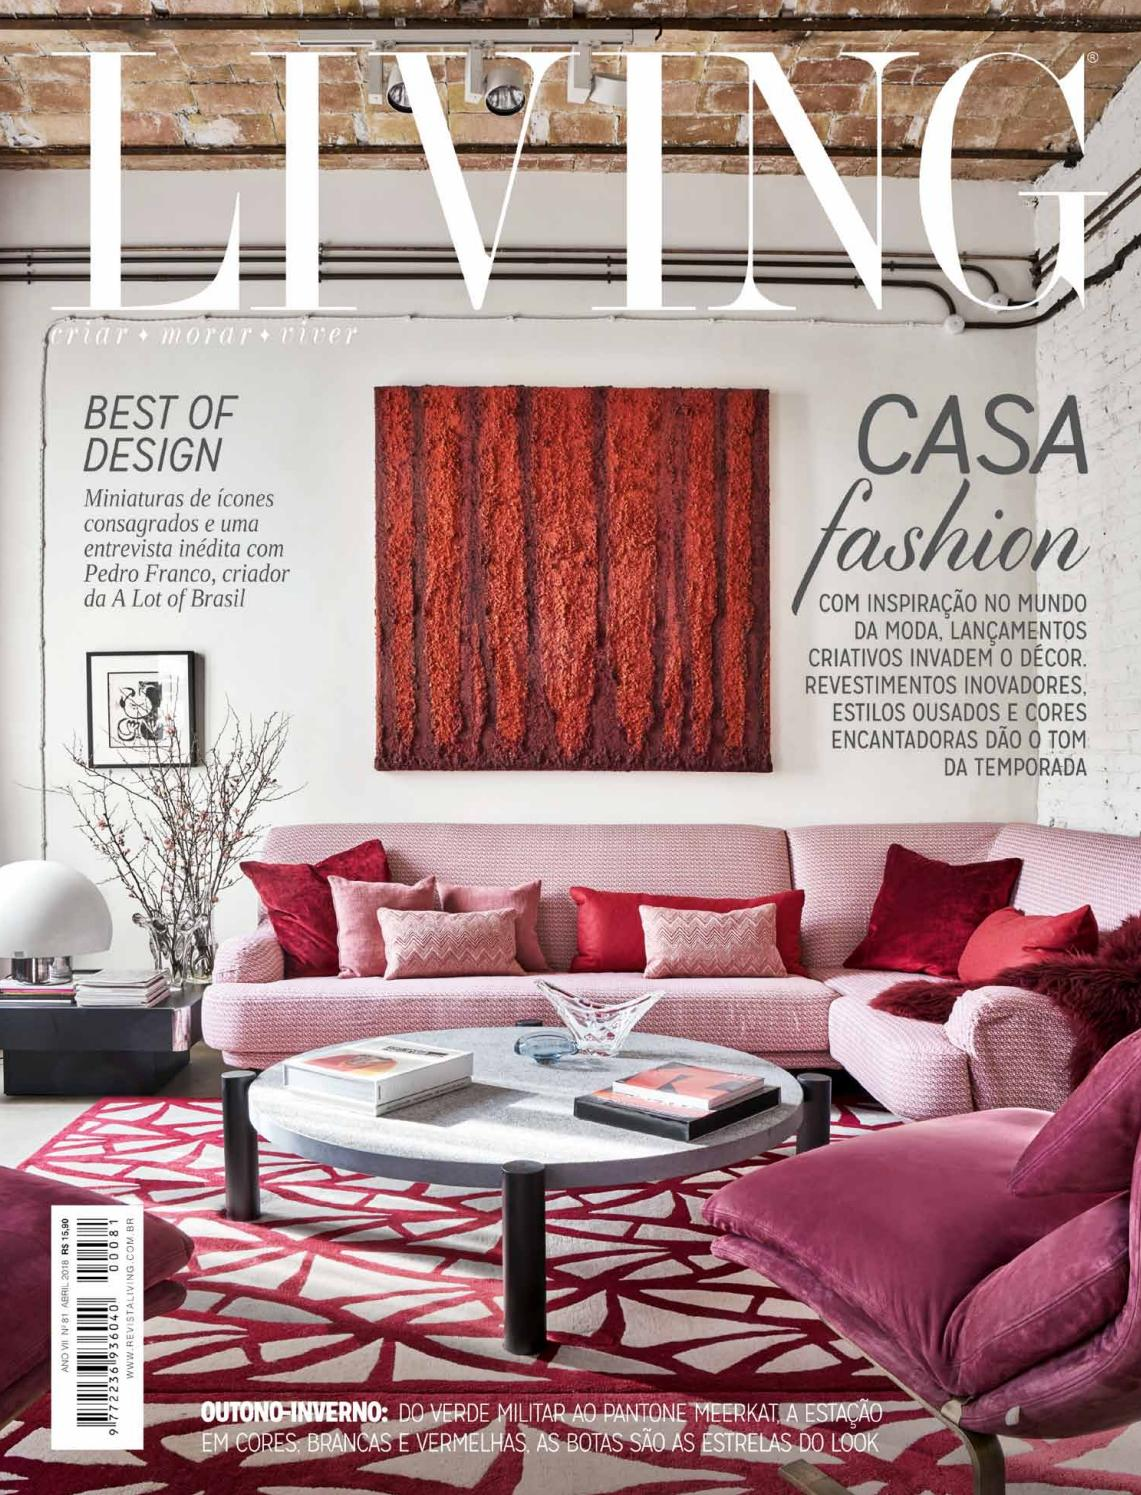 b29a2070841 Revista Living - Edição nº 81 Abril 2018 by Revista Living - issuu